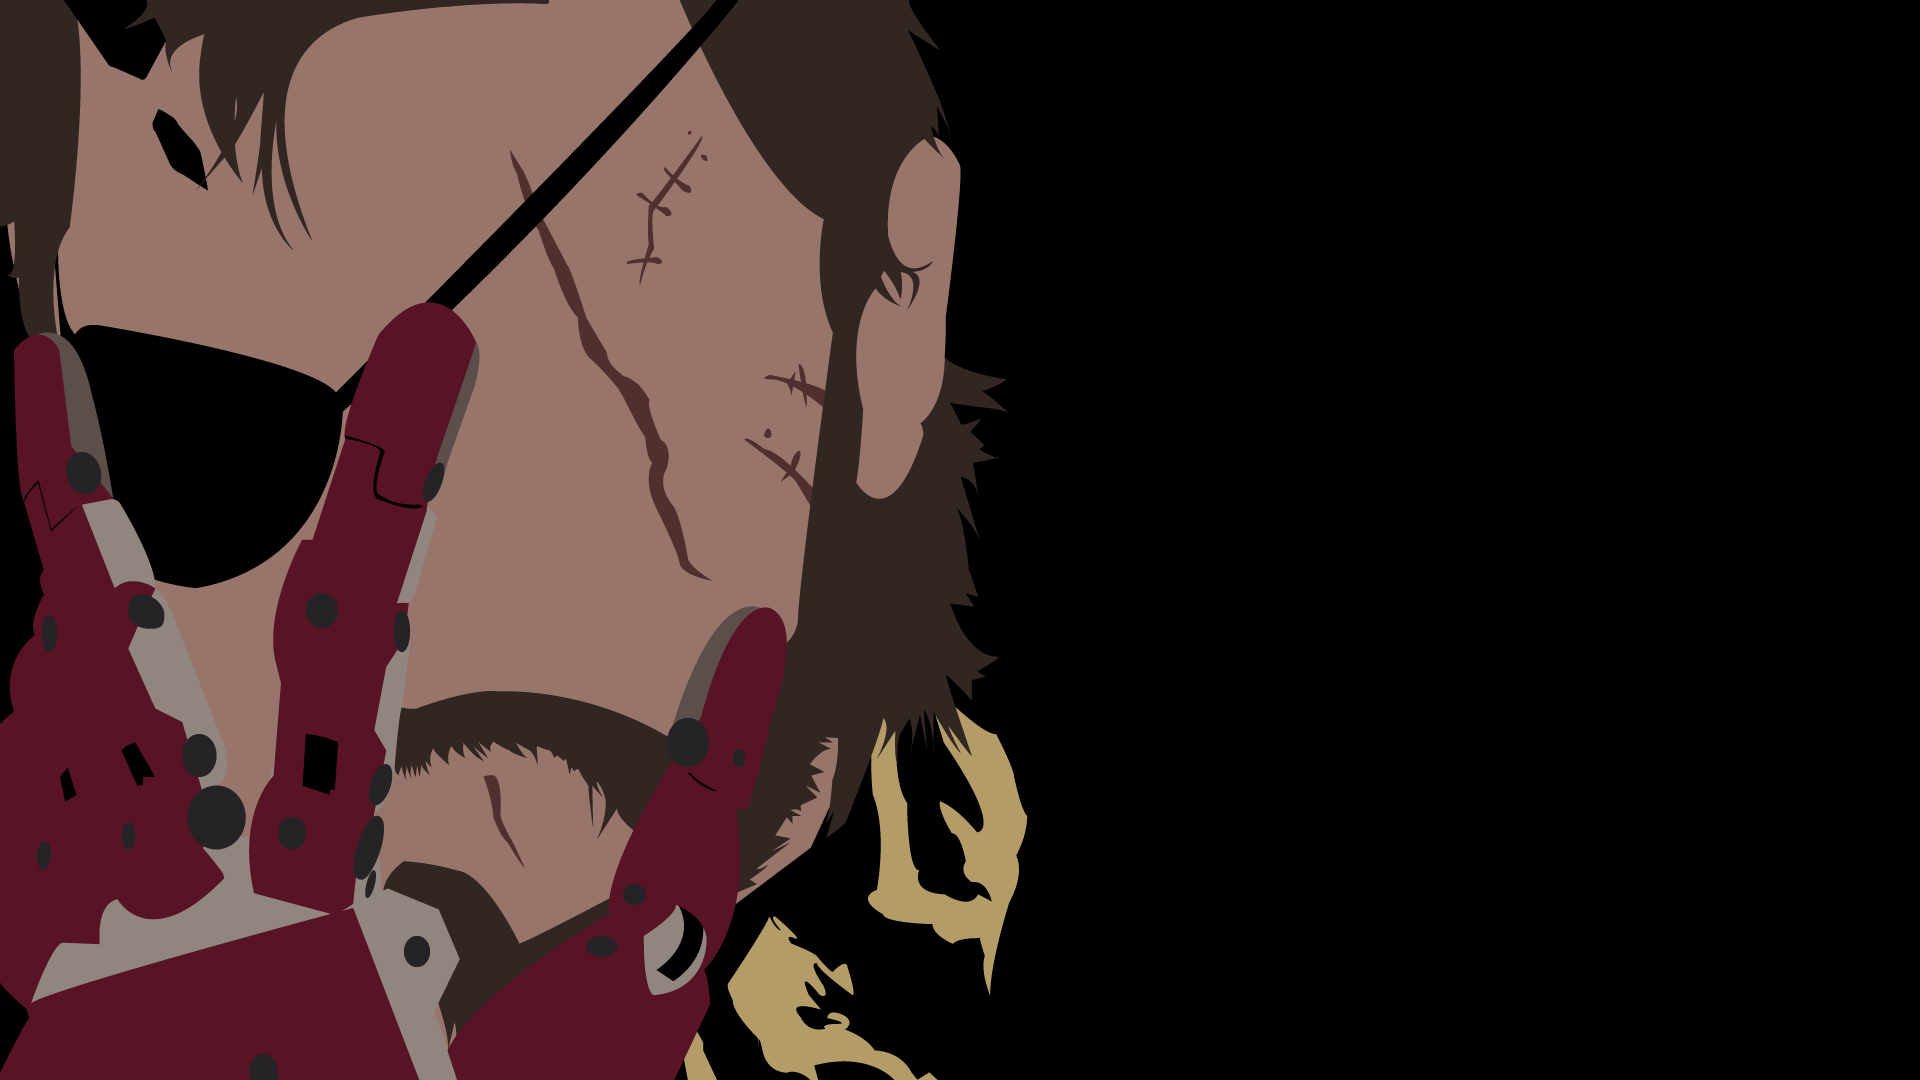 Venom Snake - METAL GEAR SOLID V: THE PHANTOM PAIN by ...